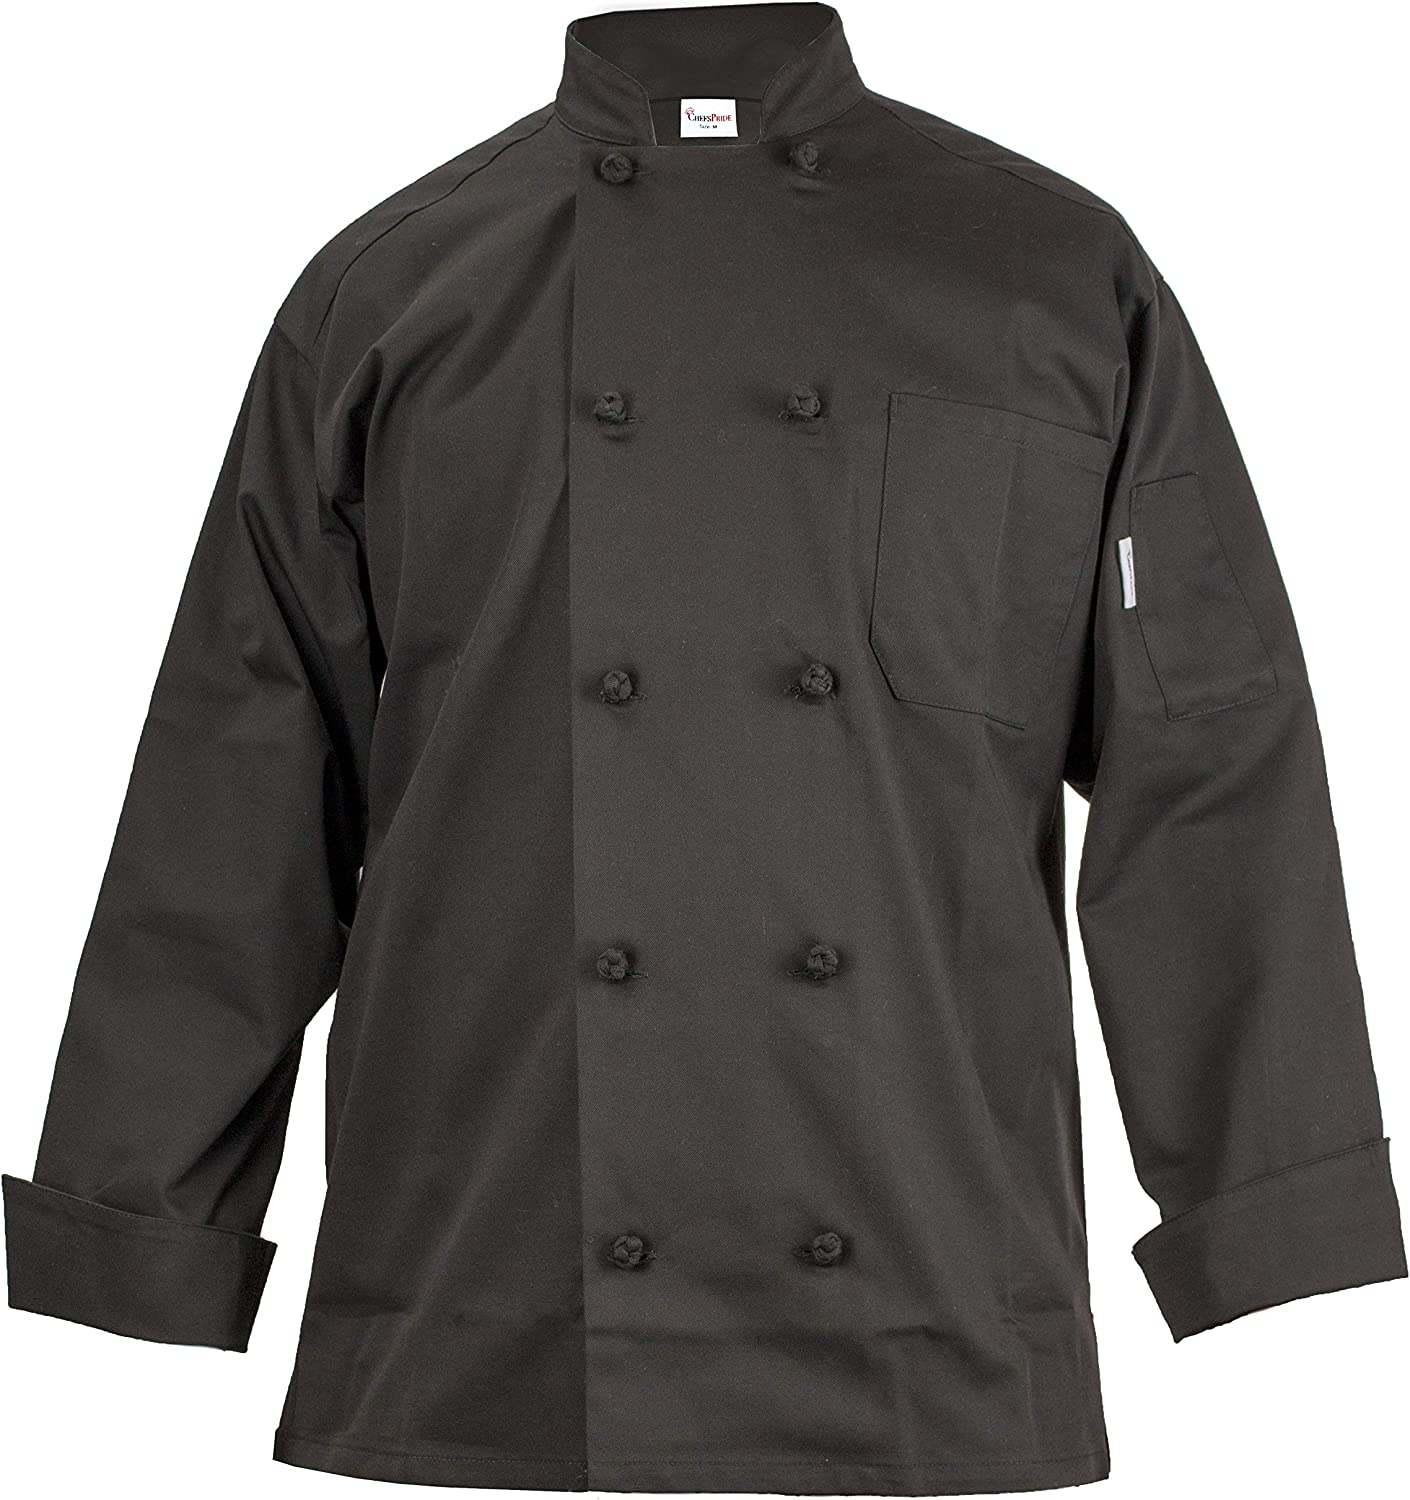 Chef's Pride Unisex Chef Coat  Double Breasted Long Sleeve Chef Jacket with Cloth Knotted Buttons Poly Cotton Blend